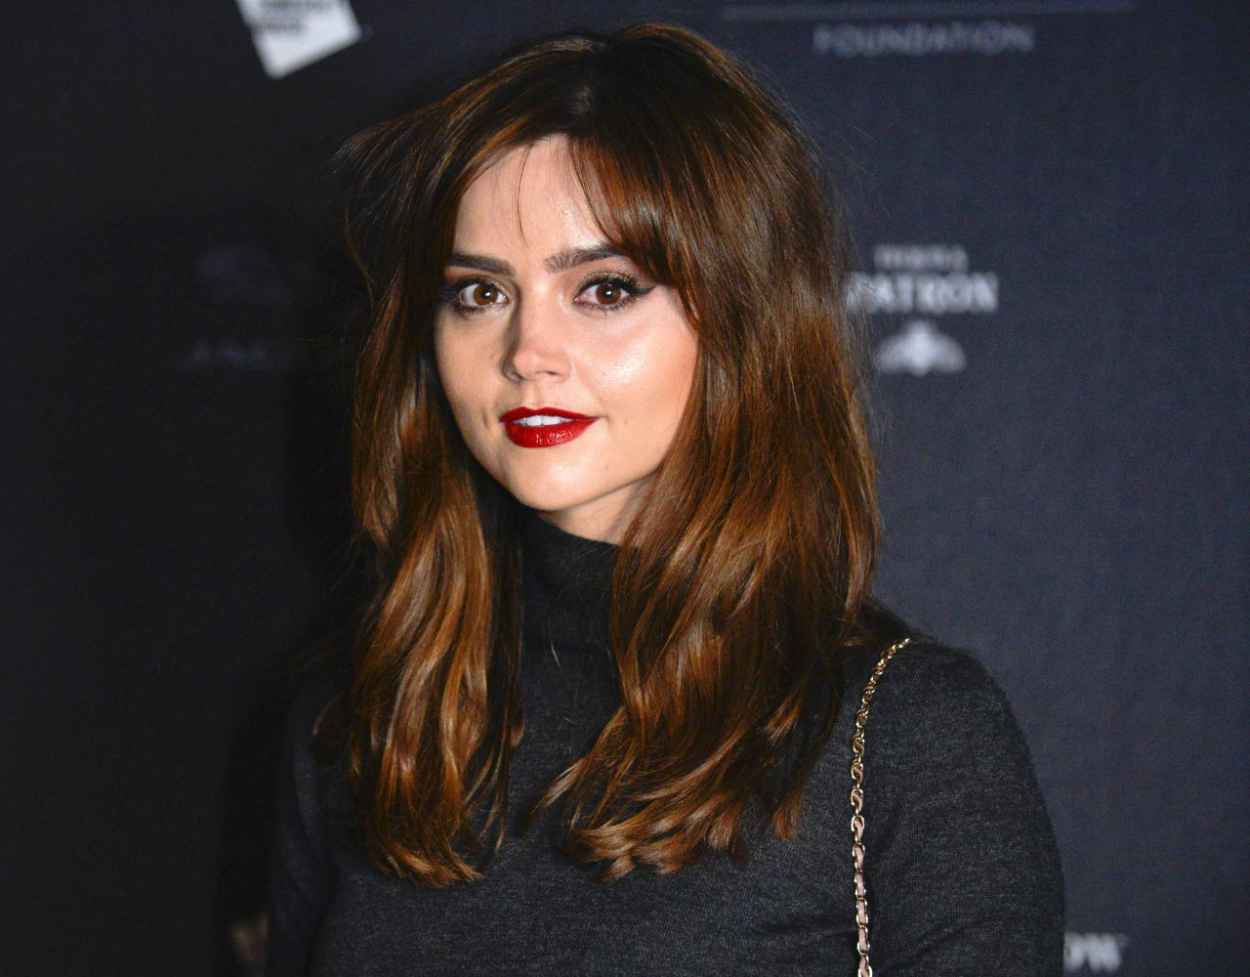 Jenna-Louise Coleman Attends Isabella Blow Fashion Galore Exhibition in London - November 2015-1